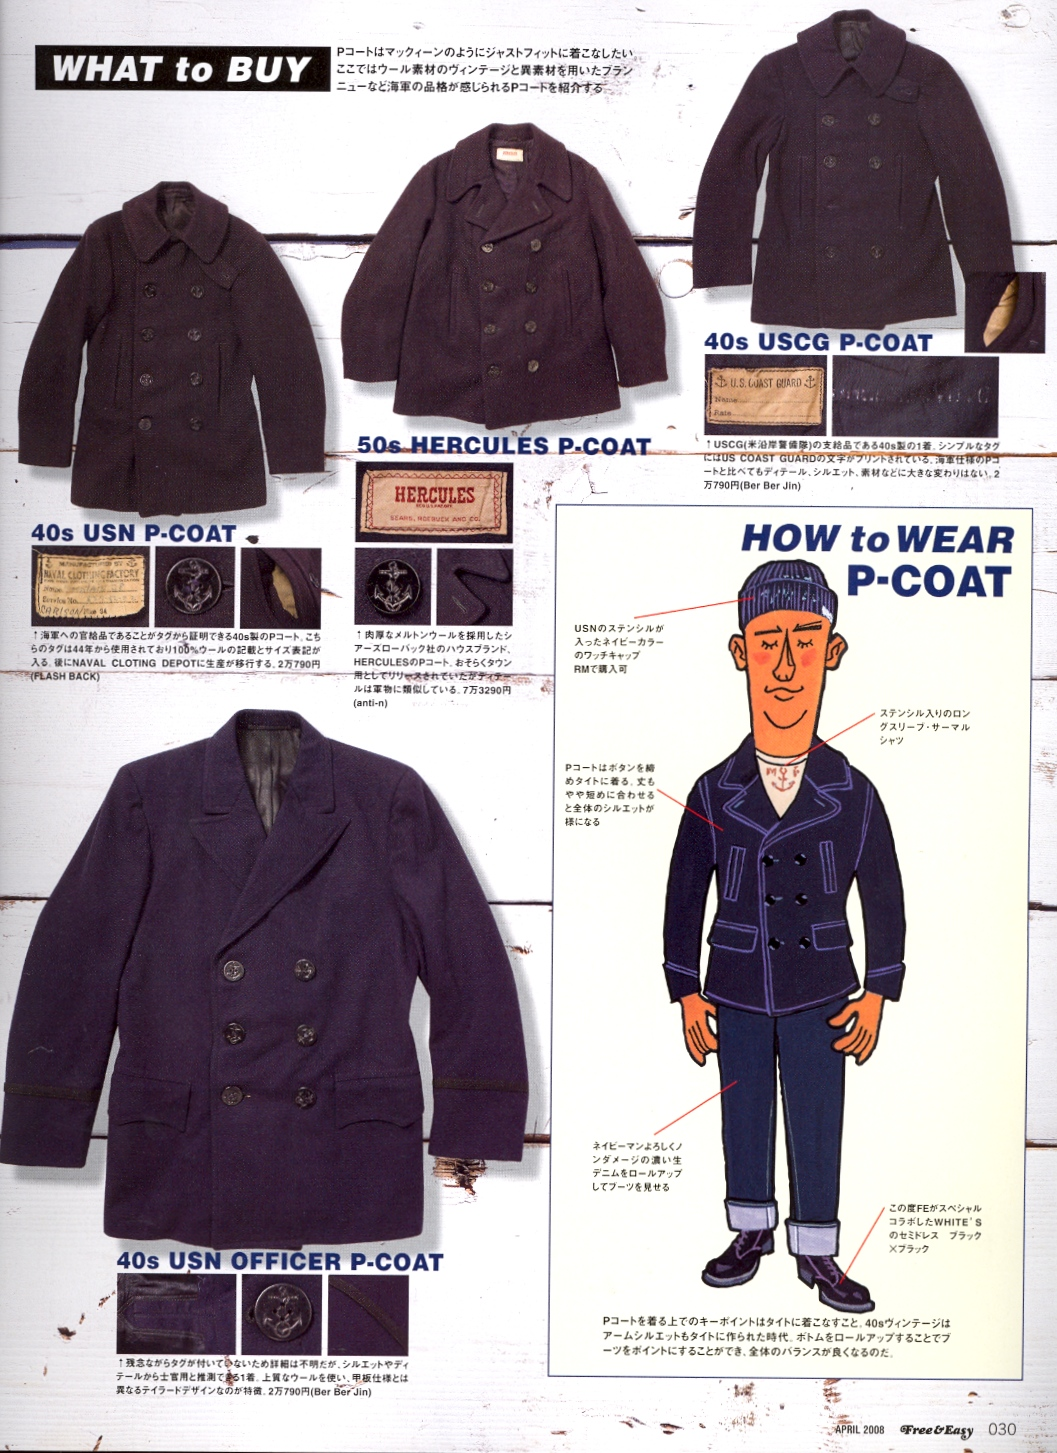 The Selective Ingredient: The US Navy Pea coat